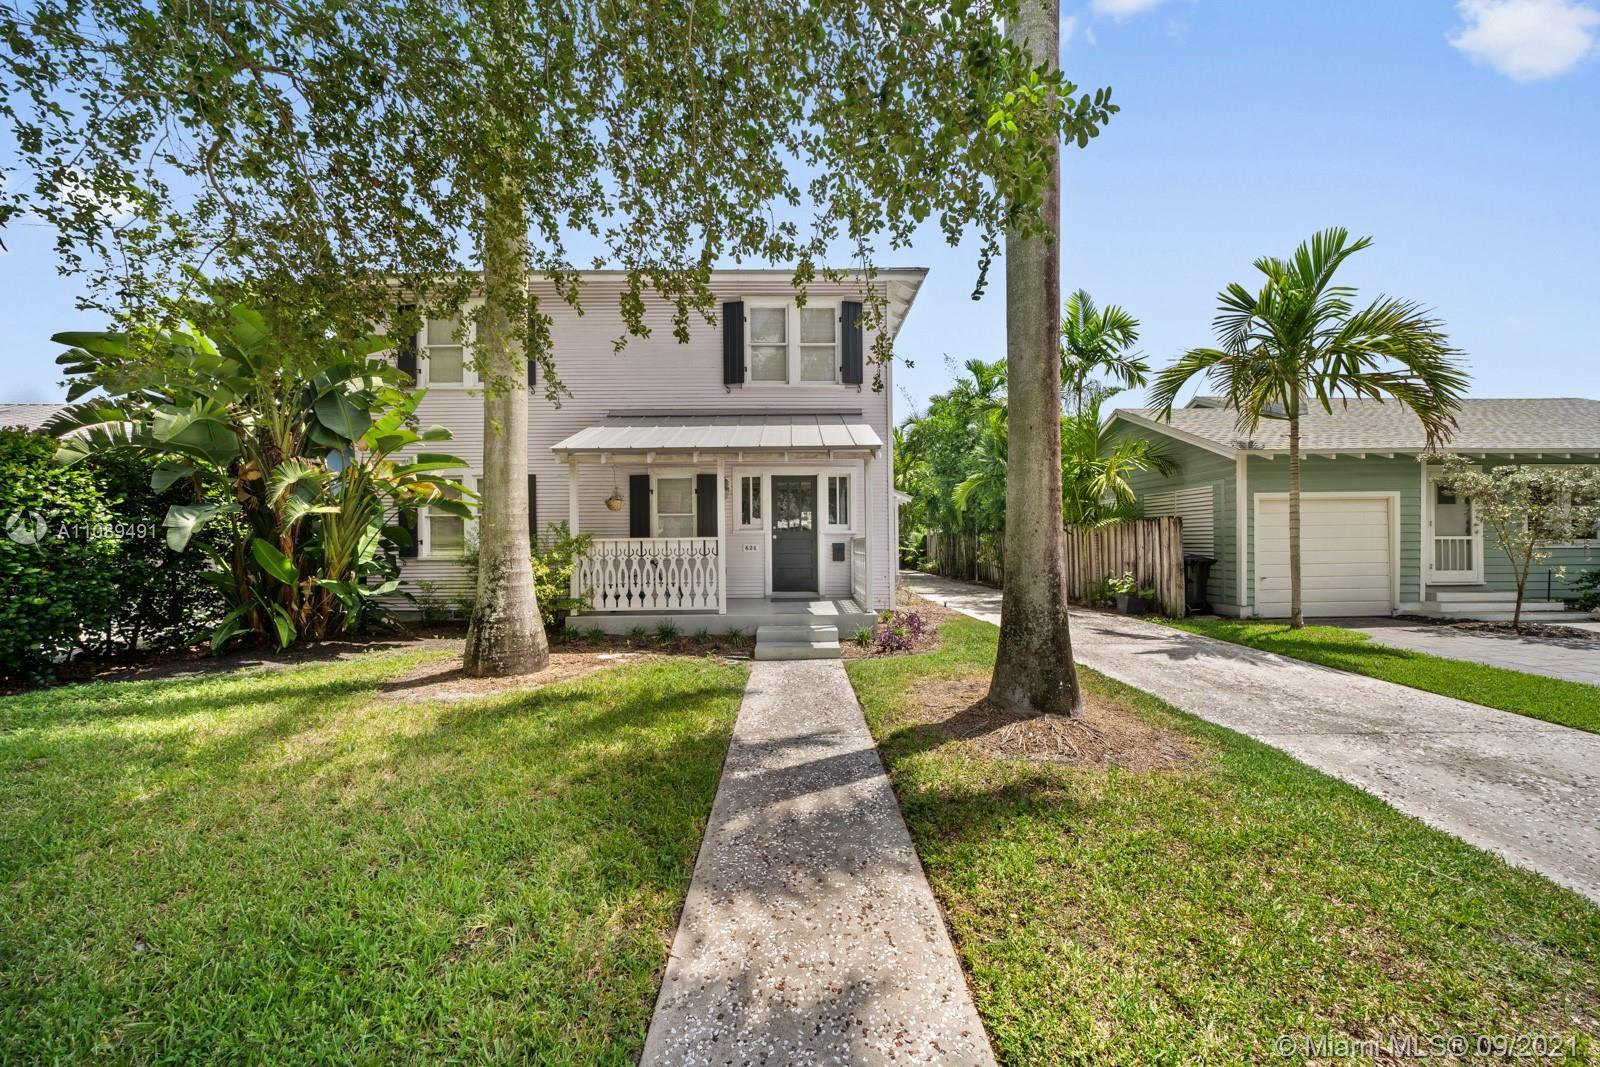 Don't miss your chance to own this beautiful two-story home in the desirable neighborhood of Tarpon